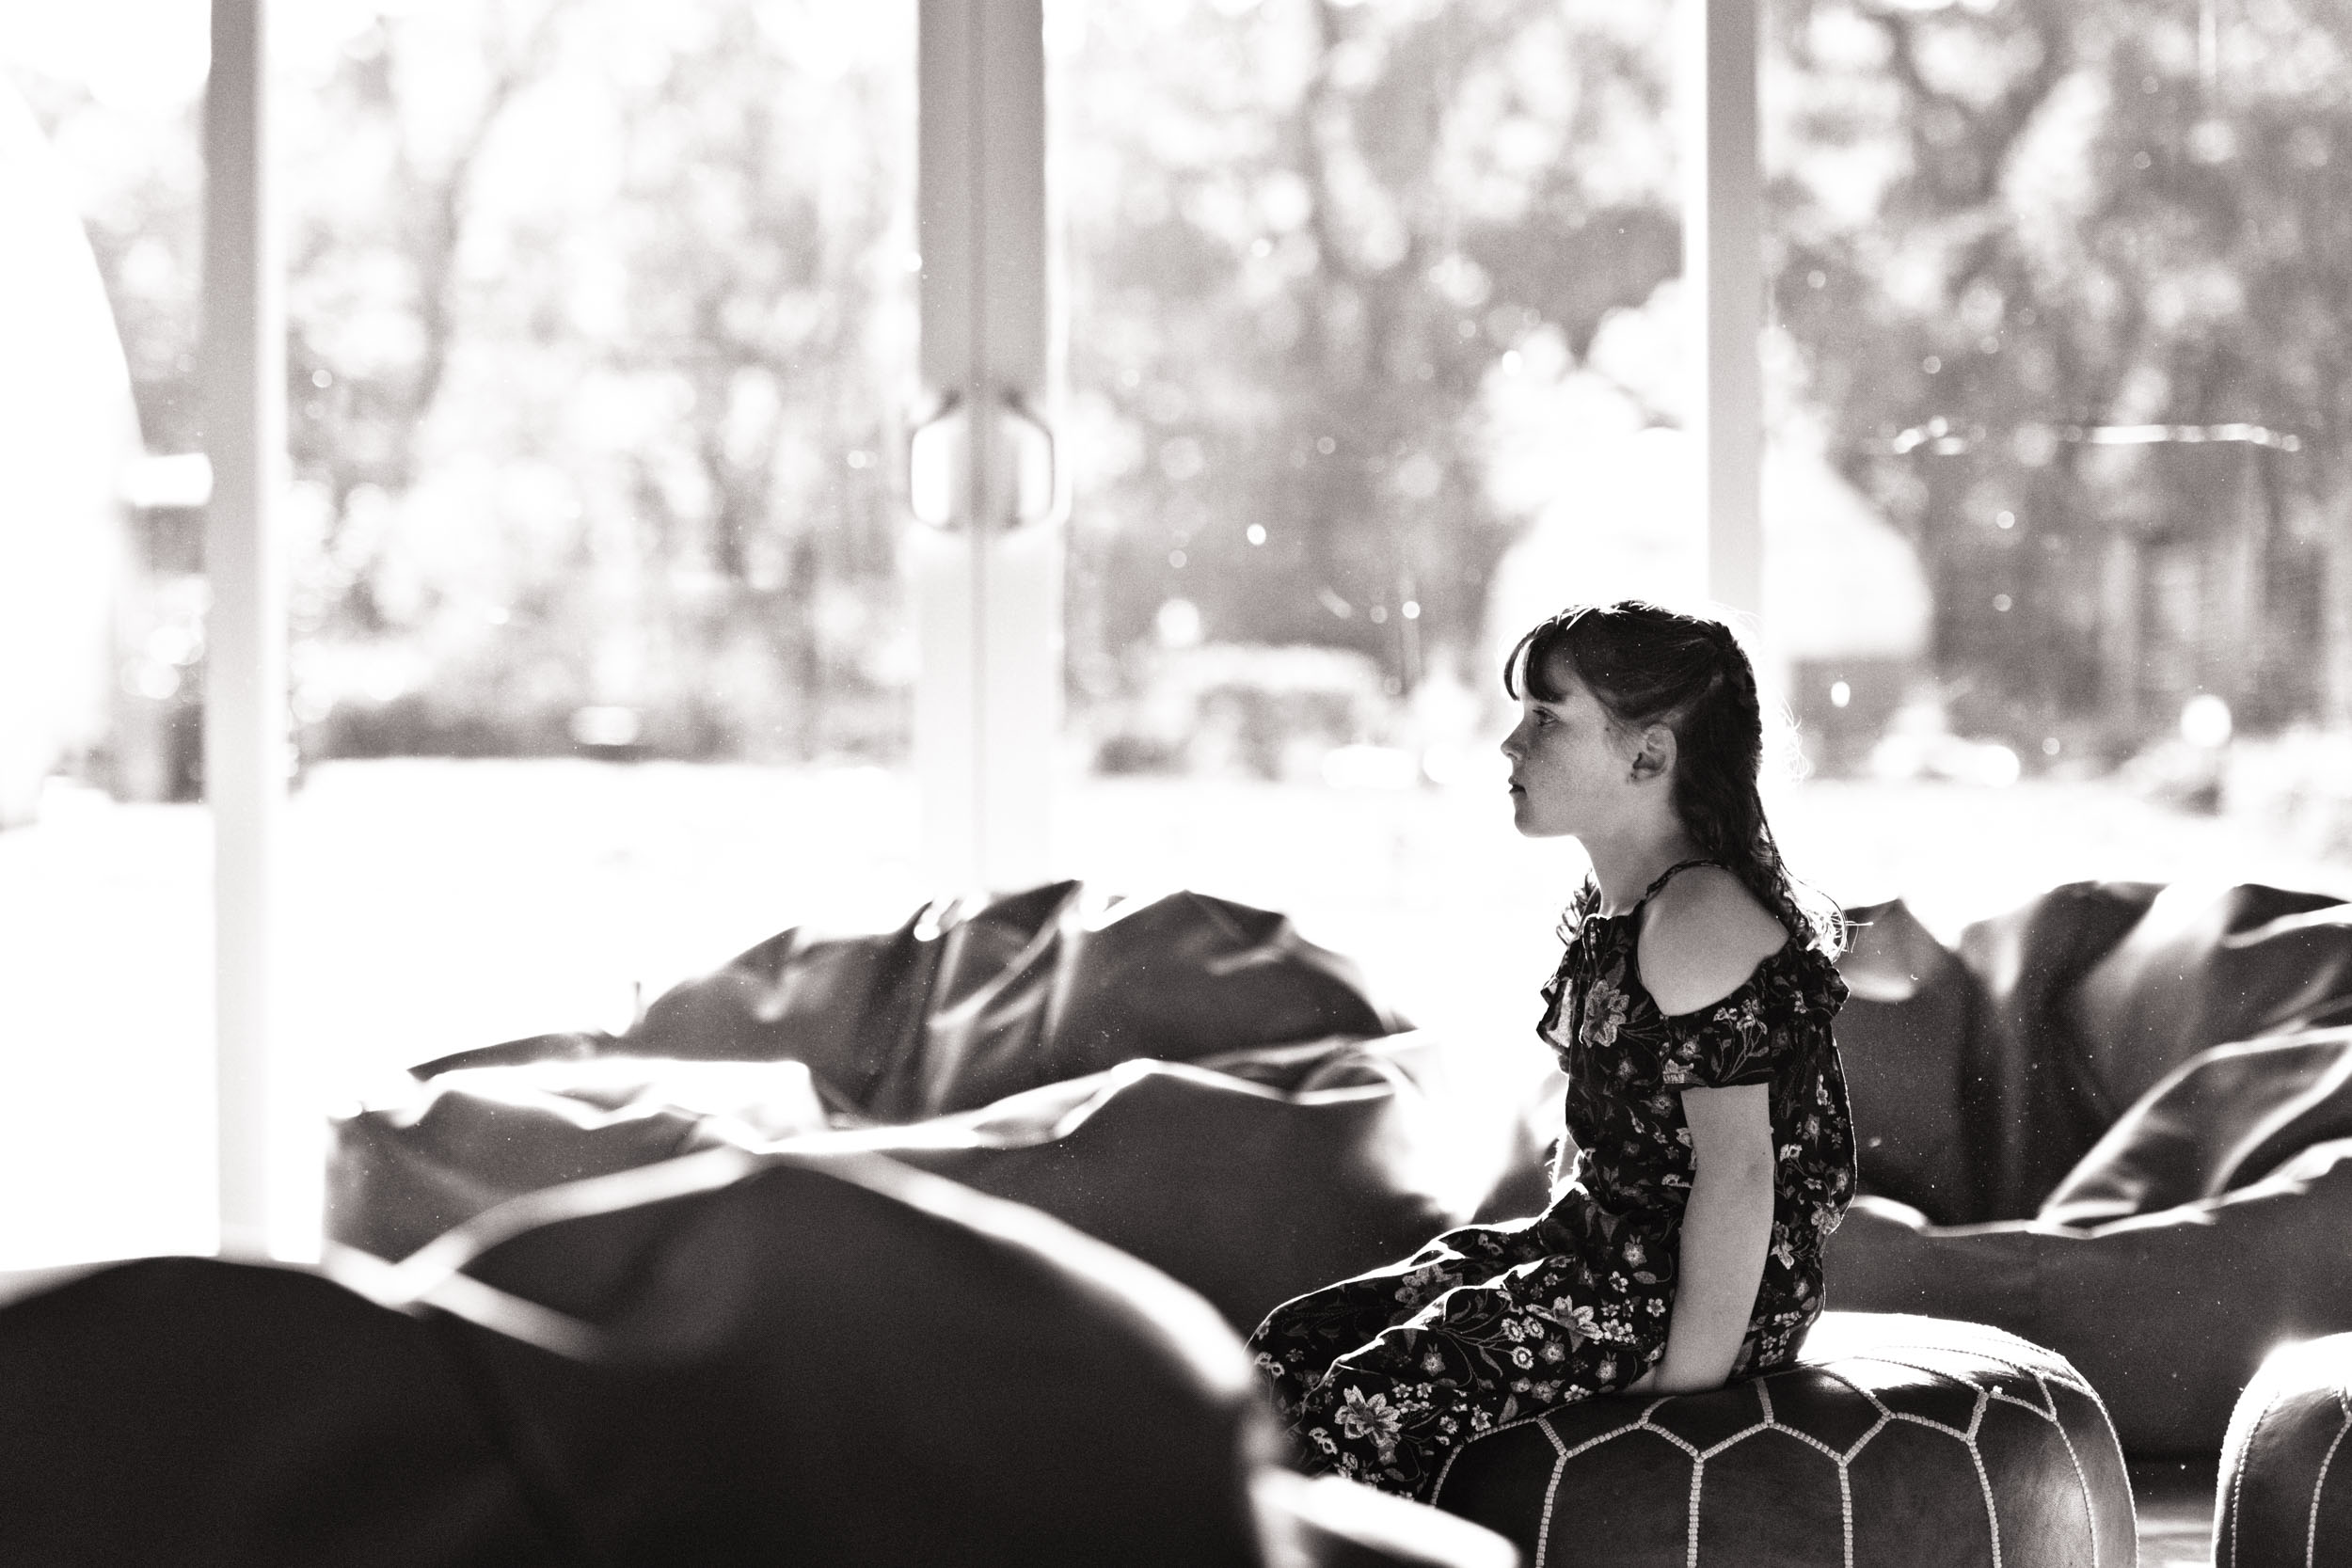 lisa hu chen orange county lifestyle photographer   sonoma california outdoor family session   blair thurston boutique retreat for photographers   black and white little girl in front of windows on couch